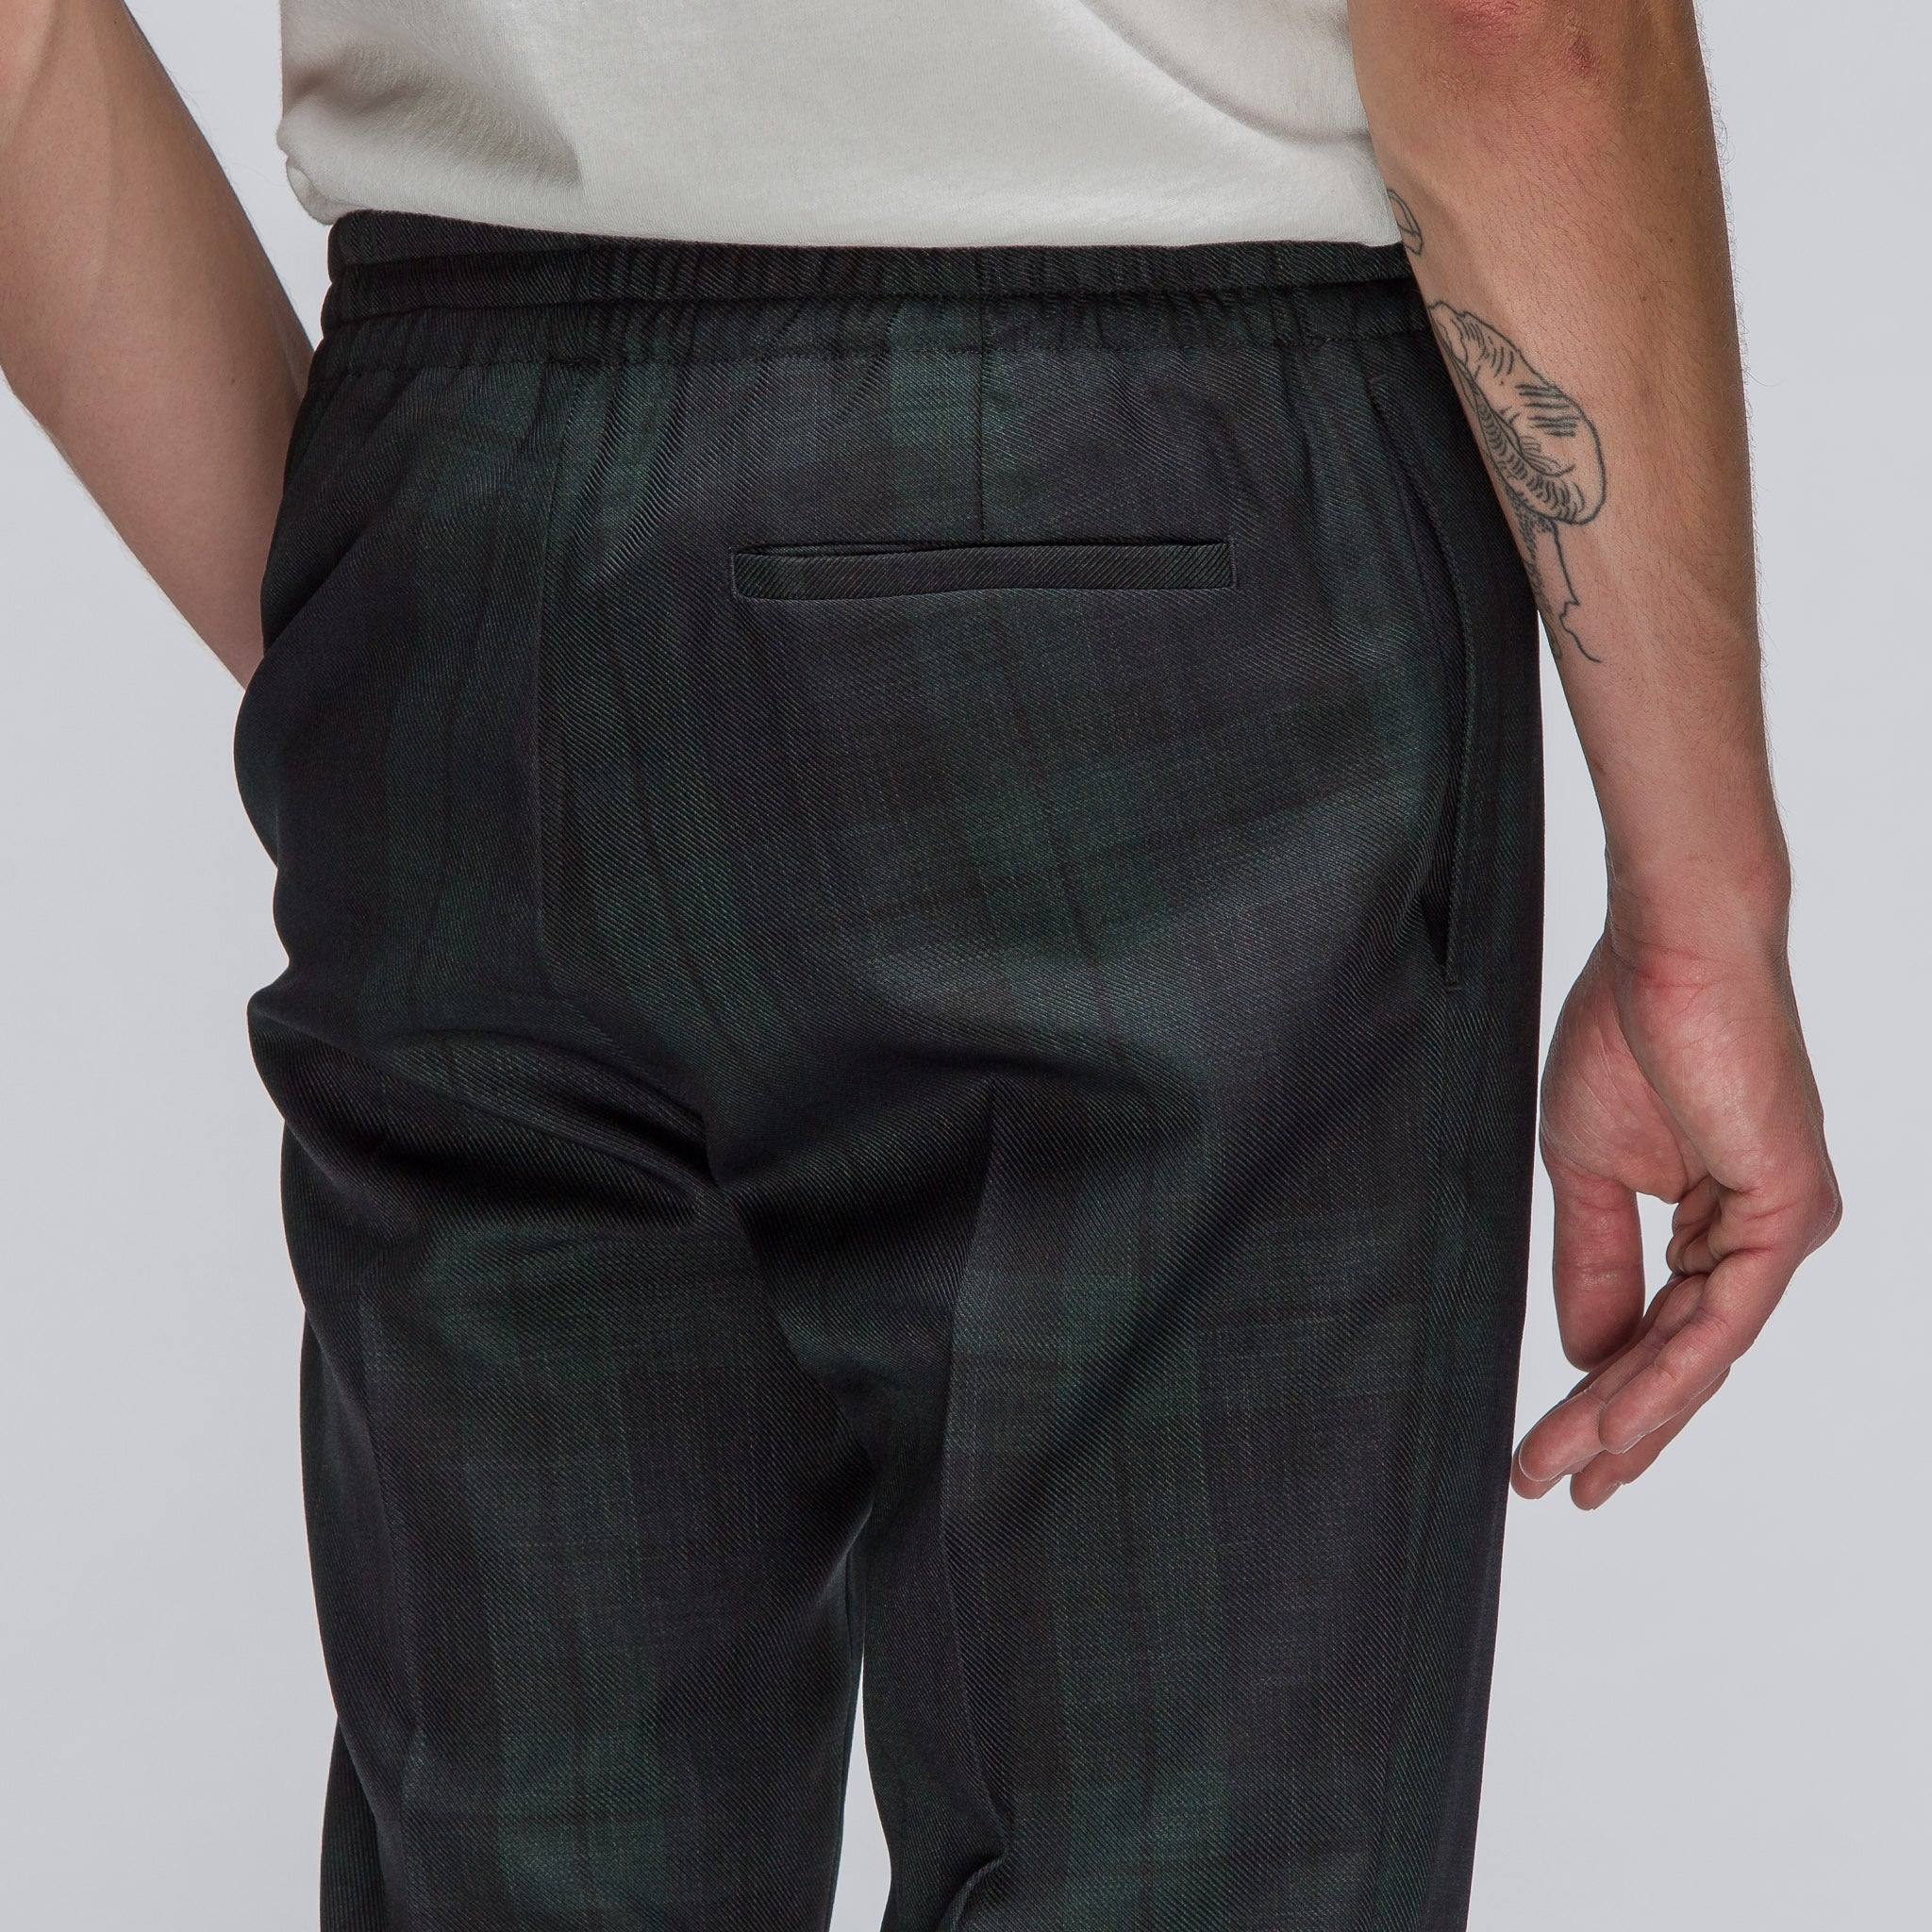 Trouser with Elastic Waist in Black Watch Plaid